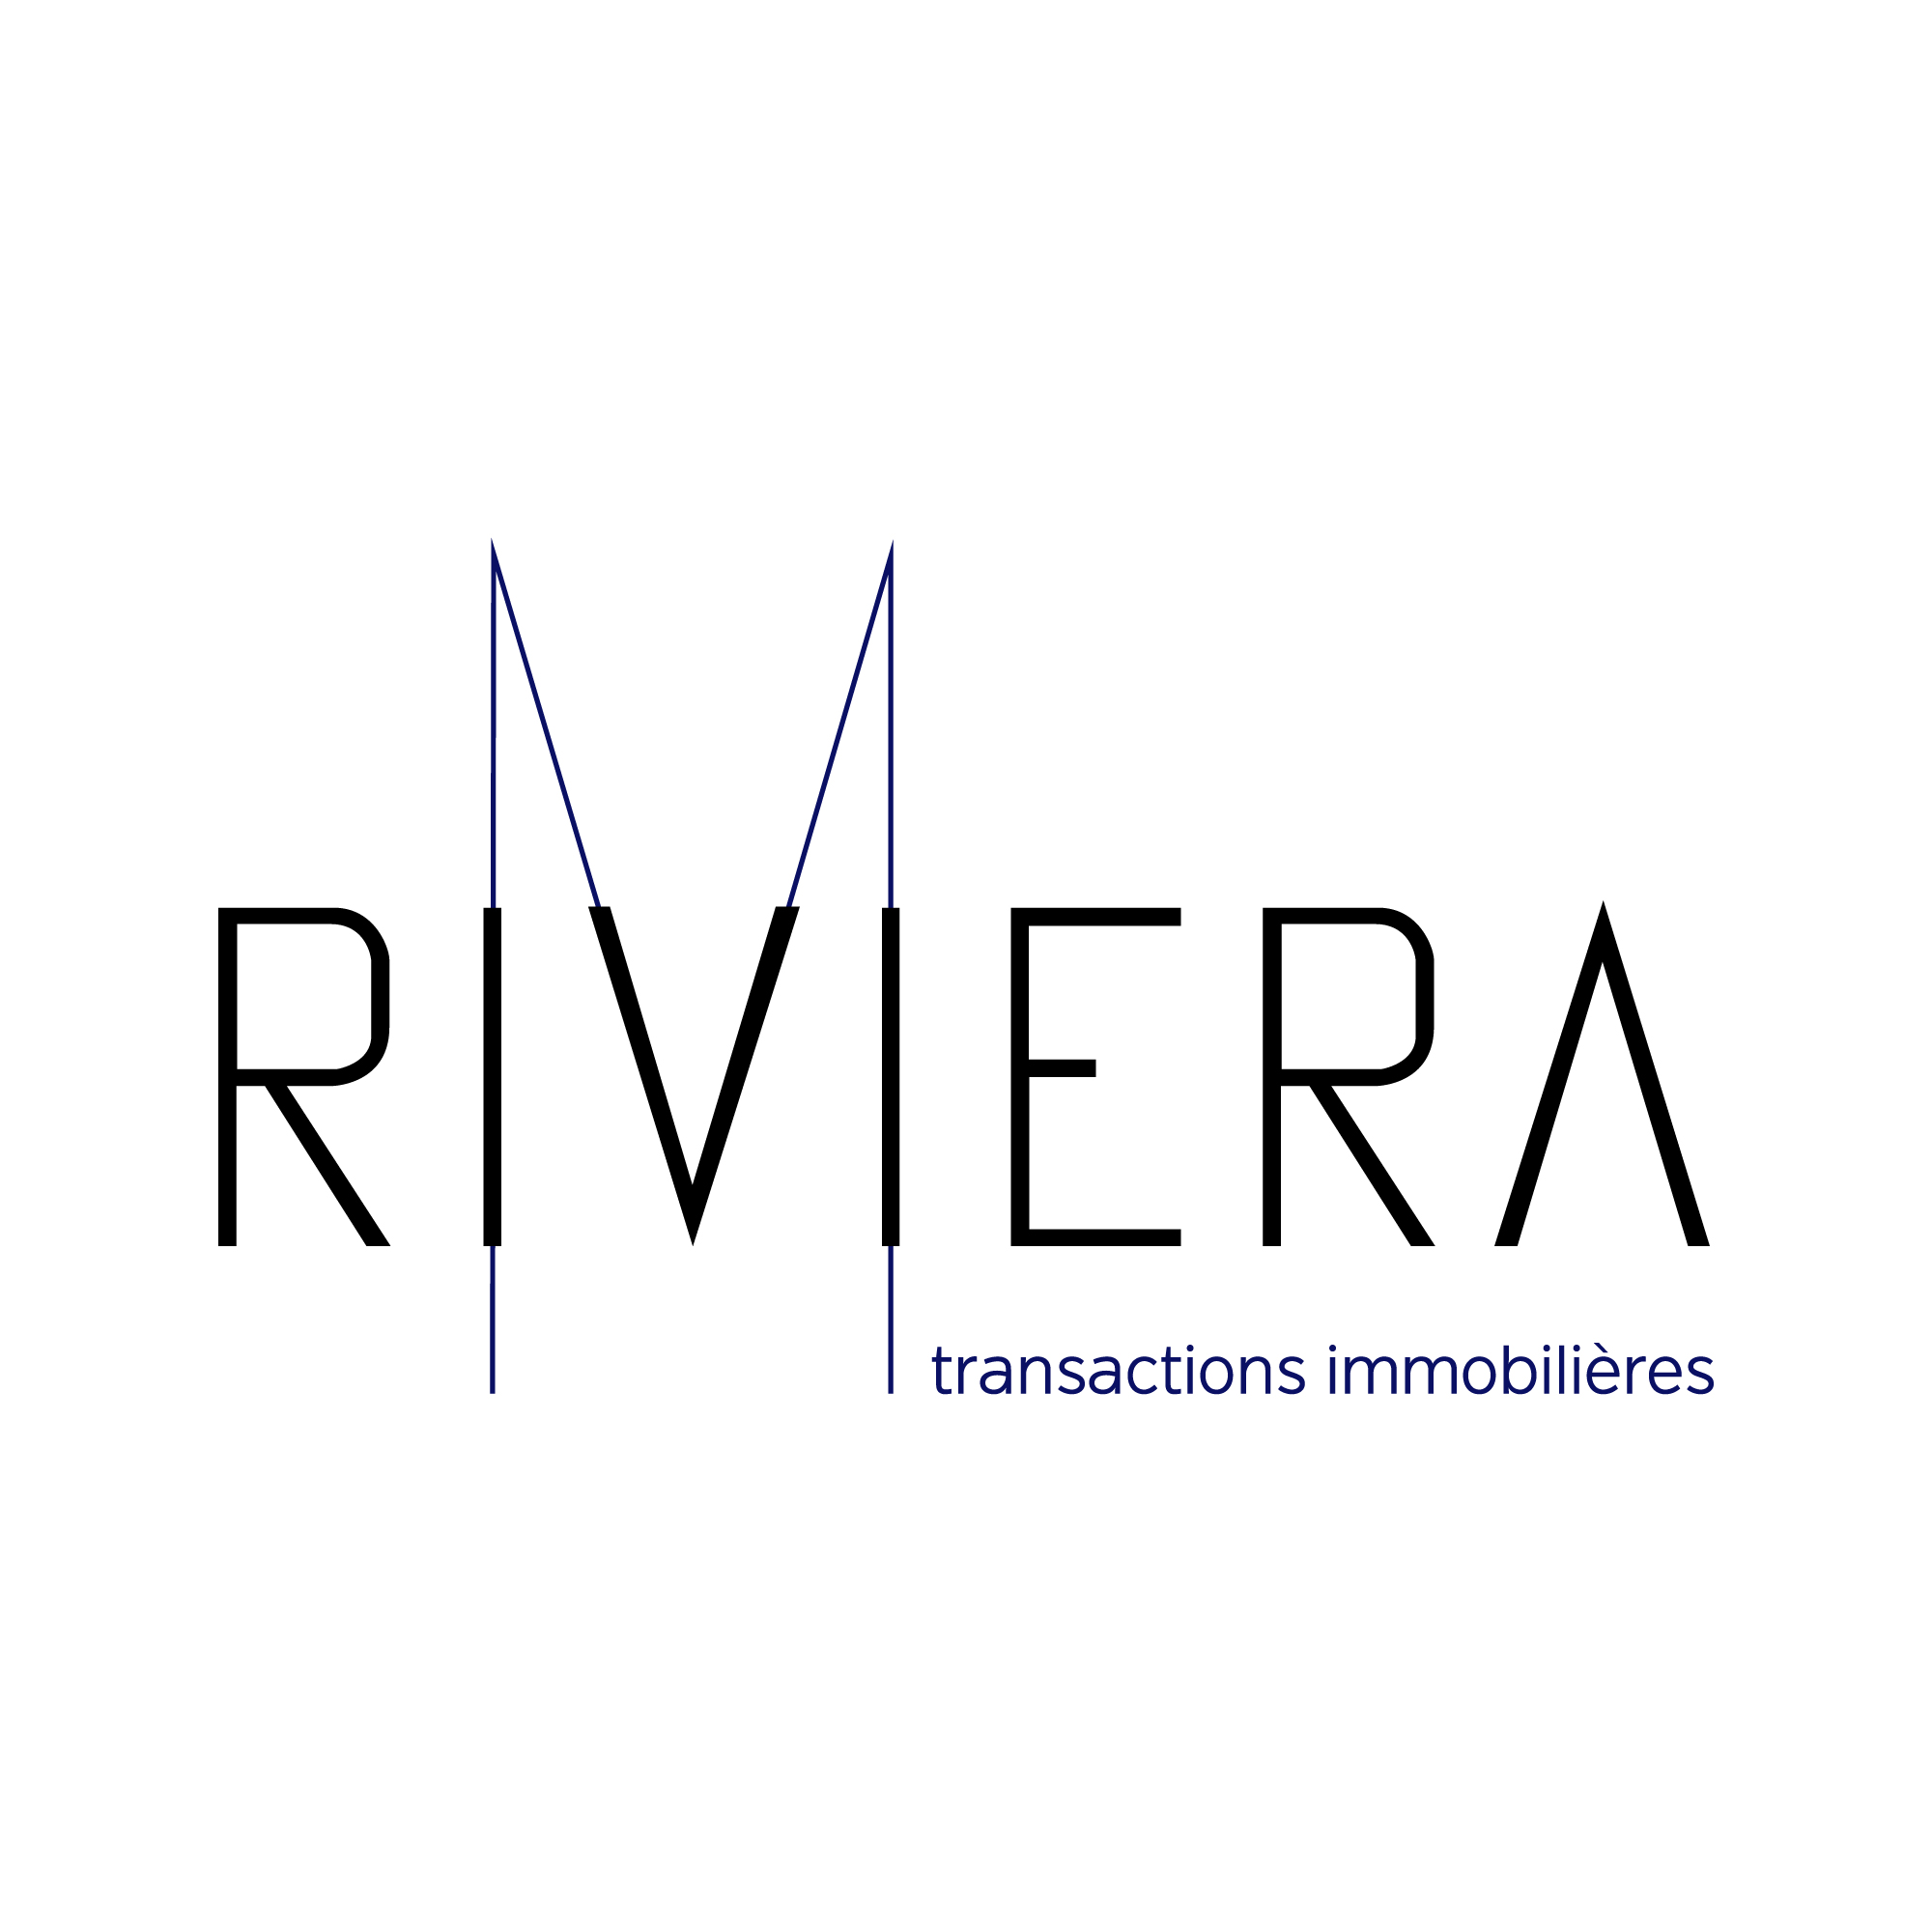 M Riviera - Ml Consulting agence immobilière Cagnes-sur-Mer 06800